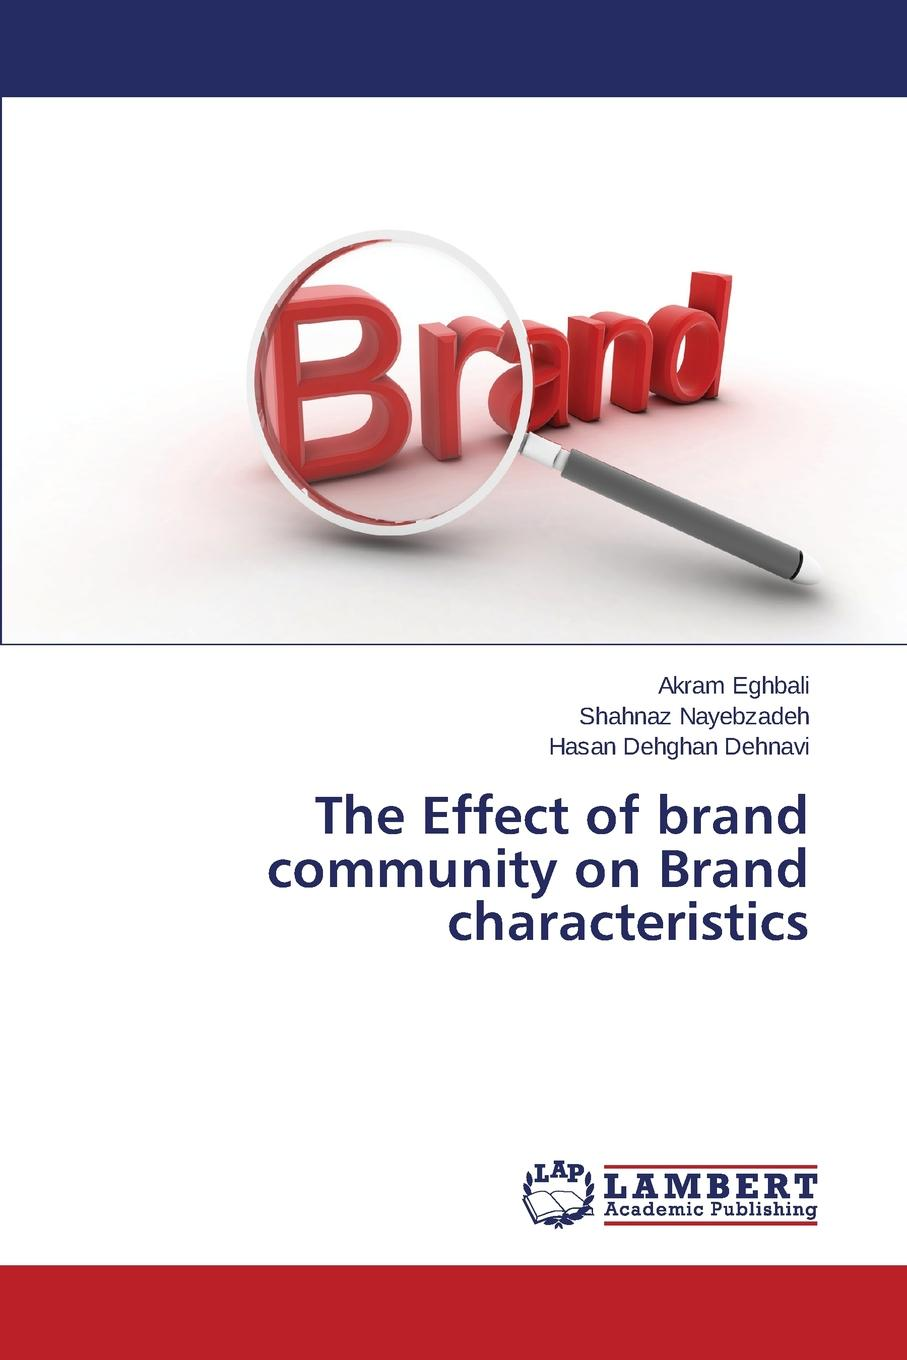 Eghbali Akram, Nayebzadeh Shahnaz, Dehghan Dehnavi Hasan The Effect of brand community on Brand characteristics color as a method of influence on consumers